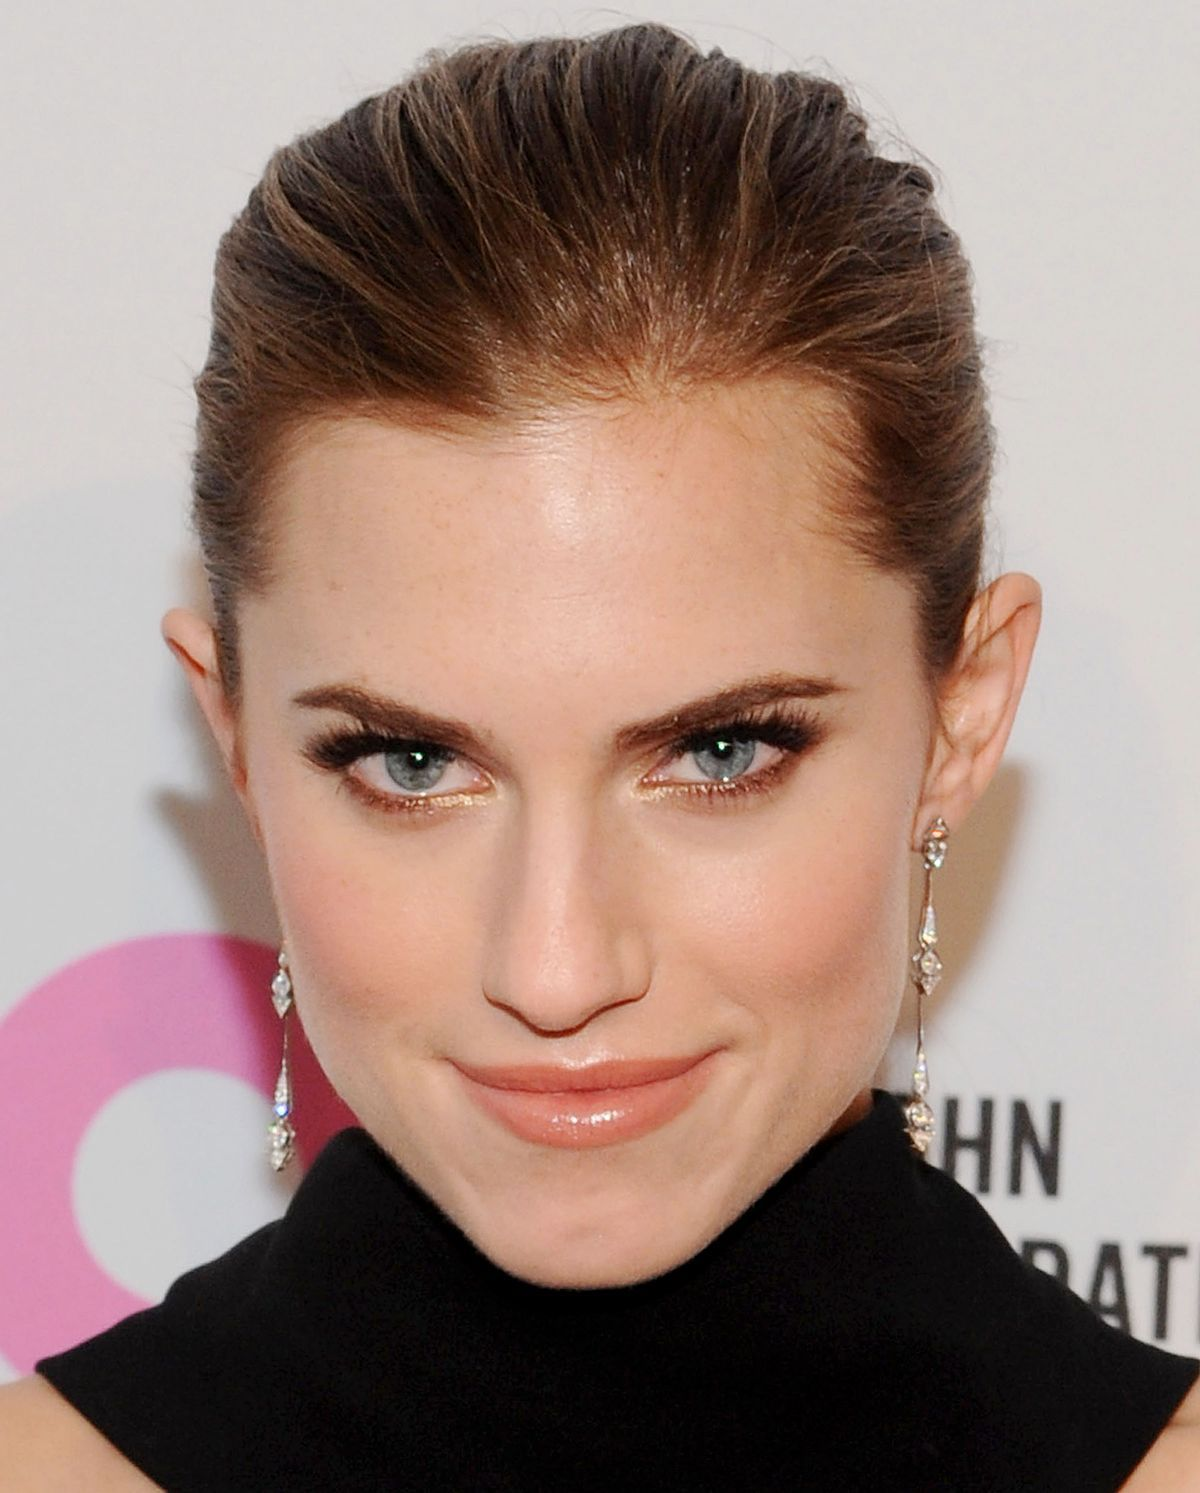 allison williams brotherallison williams gif, allison williams peter pan, allison williams interview, allison williams birth chart, allison williams tumblr, allison williams wiki, allison williams gif tumblr, allison williams lena dunham, allison williams engagement ring, allison williams brother, allison williams dad, allison williams shoe size, allison williams father, allison williams bio, allison williams facts, allison williams stephen colbert dress, allison williams singing, allison williams tom hanks, allison williams imdb, allison williams youtube